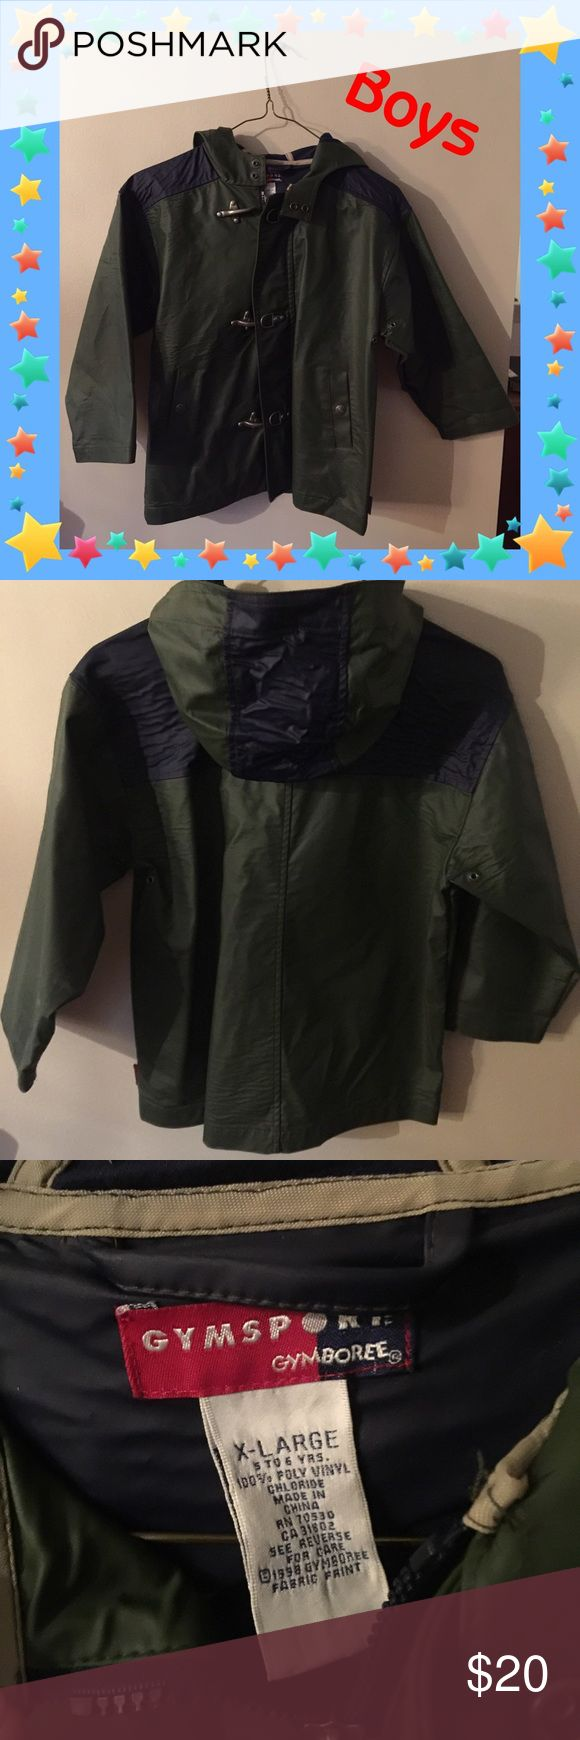 Gymboree Gymsport Raincoat EUC - no rips or stains, zipper/snaps/hooks all in working order. 100% poly vinyl. Size XL (5-6 yrs). Green and navy. Smoke free home. Gymboree Jackets & Coats Raincoats